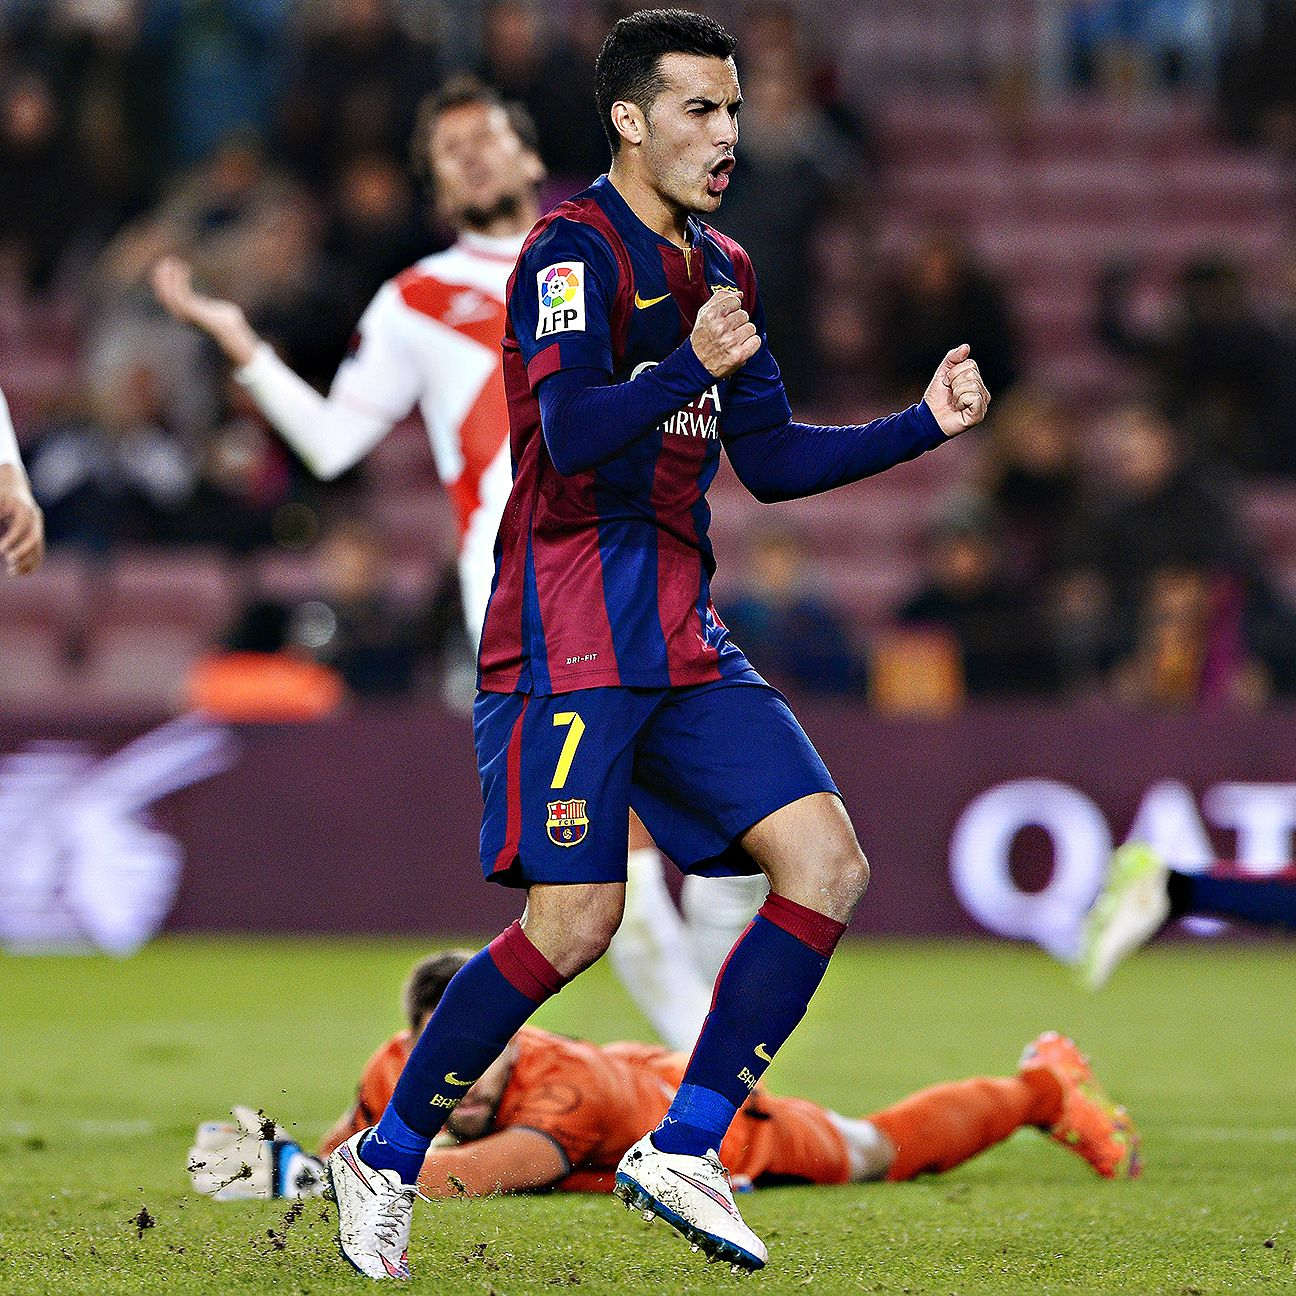 There was no stopping Pedro on Tuesday night as the Barcelona forward scored a hat trick in the first half against Huesca.